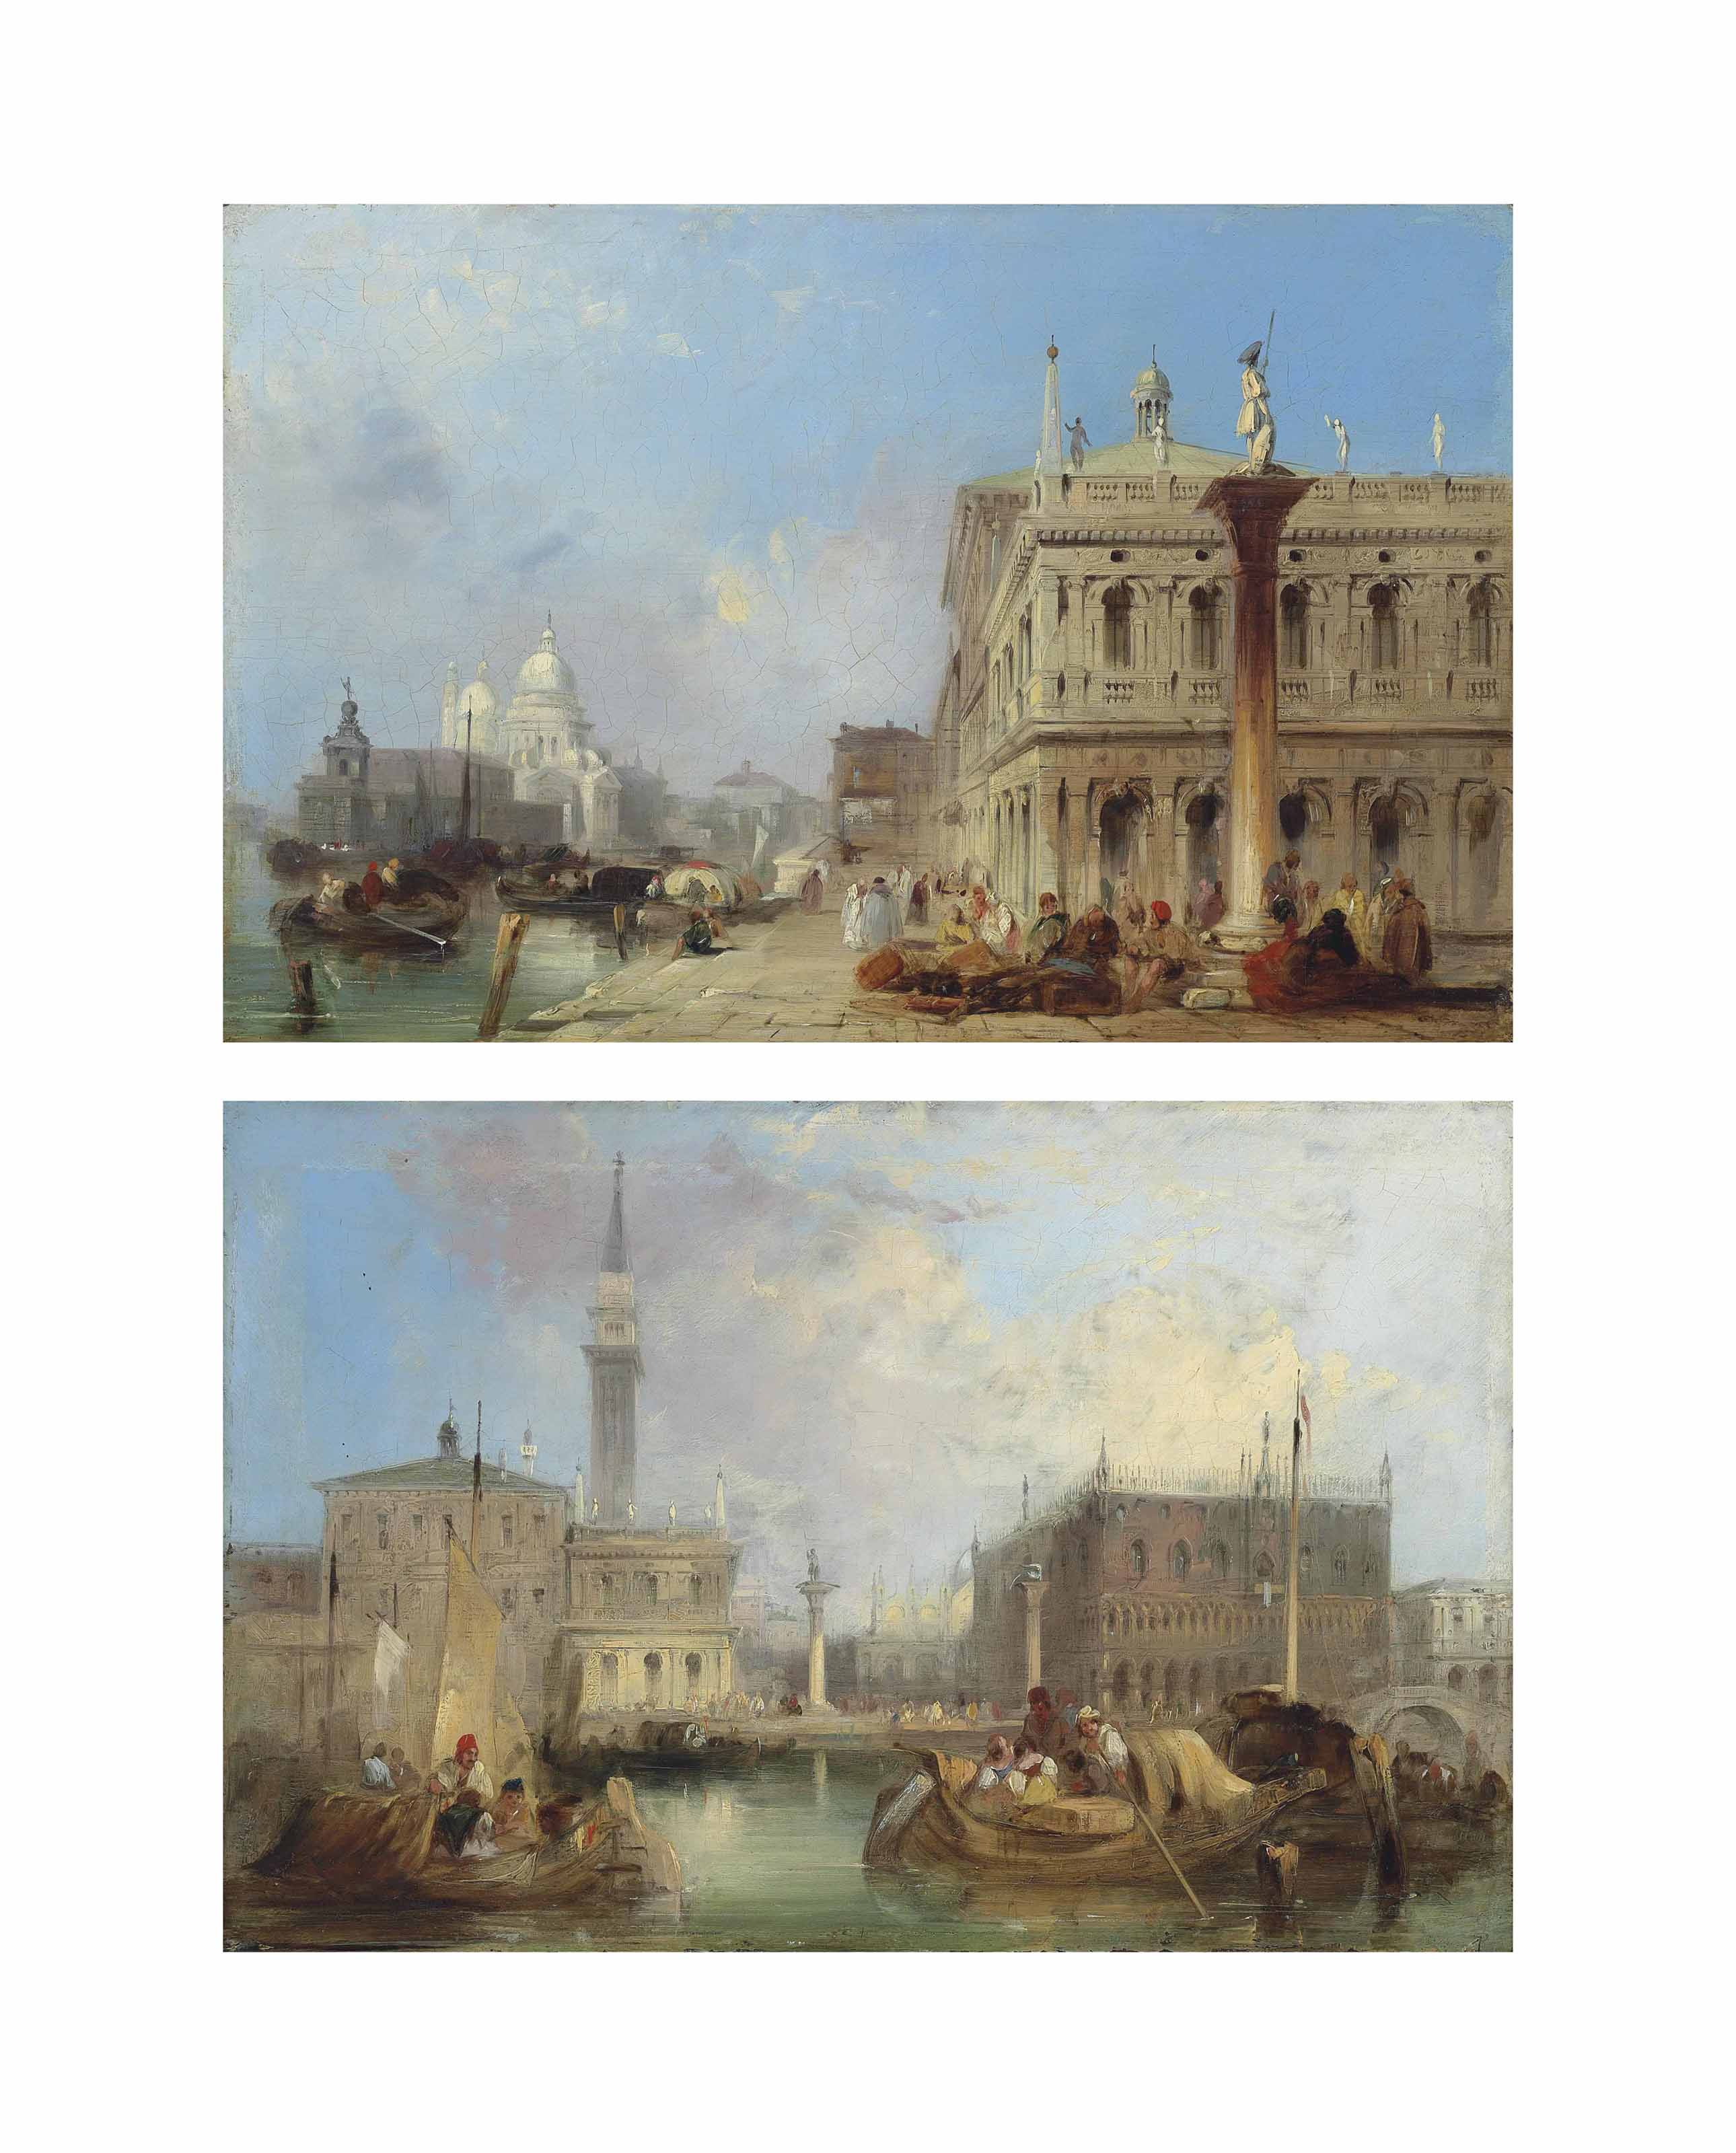 The entrance to the Grand Canal, Venice, from the Piazetta, with the Church of Santa Maria della Salute in the distance; and The Doge's Palace, The Piazetta and the Campanile of St Mark's, seen from the Bacino